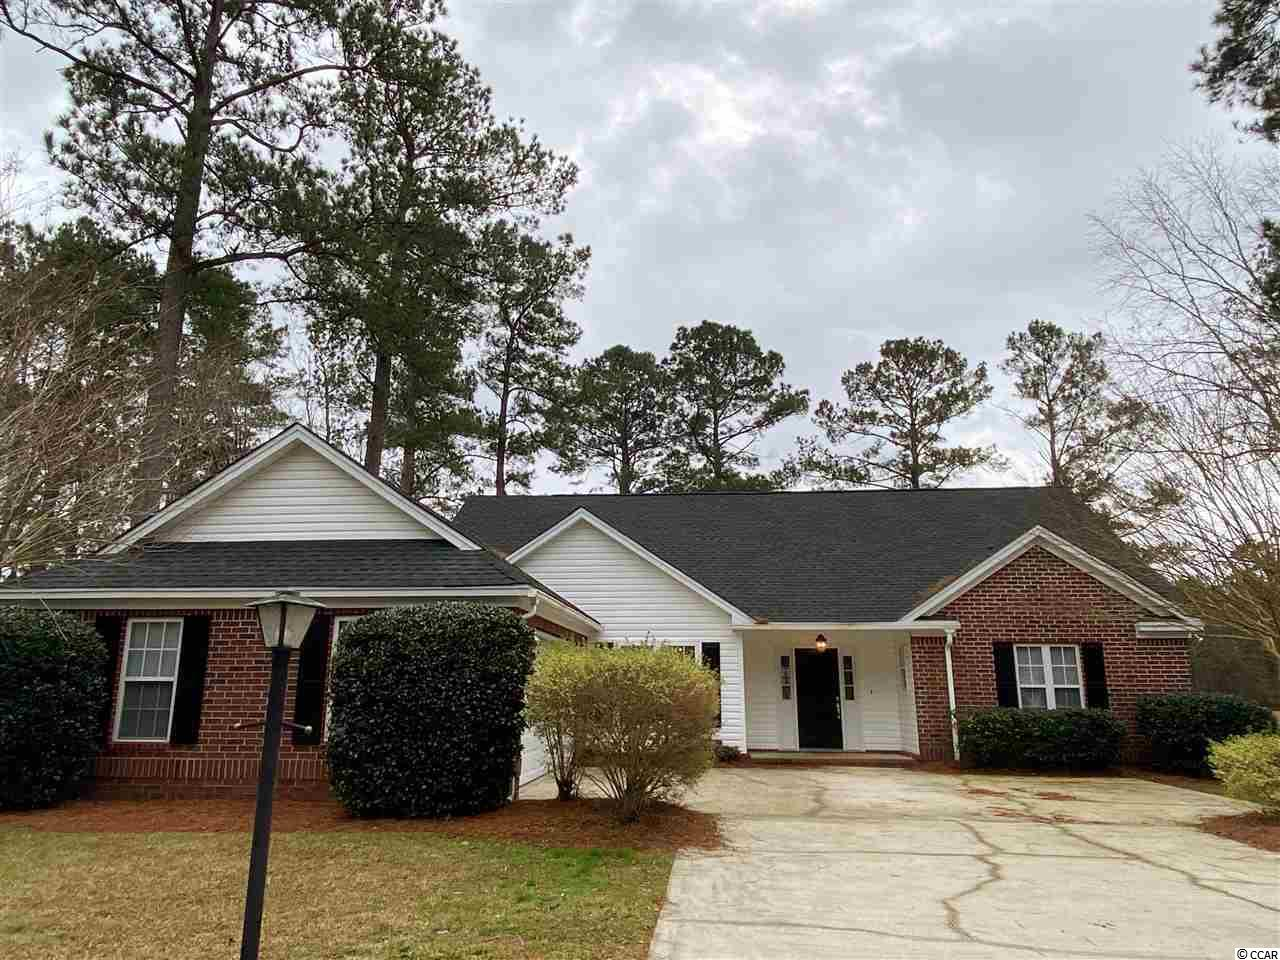 Seller says SELL this 3 BR, 2 Bath home in Wedgefield, and has priced it accordingly! It offers a split floorplan, all on one level, with vaulted ceilings, formal dining room, breakfast nook, breakfast bar, Carolina room, laundry room, pre-engineered wood and tile floors....no carpet. The spacious master suite features a big garden tub, separate shower, double sink vanity, private water closet, walk-in closet, and linen closet. It has a NEW ROOF  (April 2020) and the HVAC is only 4 years old! Lush, mature landscaping surrounds 159 King George: magnolias, azaleas, camellias, and crepe myrtles.  We can't wait to see it in the Spring! Other features include: 2 car garage, tile kitchen counters, kitchen pantry, attic space, patio and a gorgeous view of the golf course. Historic Wedgefield Plantation is located on the site of a former rice plantation.  In addition to a recently renovated, gorgeous golf course, there is a community boat landing and day dock on the Black River, swimming pool, tennis courts, and the on-site Manor House Restaurant.  Downtown Georgetown is less than 10 minutes away, where you'll enjoy fine dining, boutique shopping, museums, art galleries and excellent health care facilities. The beautiful beaches of Pawleys Island are just a 20 minute ride north.  This house on the quiet cul-de-sac of King George Rd. in Wedgefield Plantation, is the perfect place to call home!